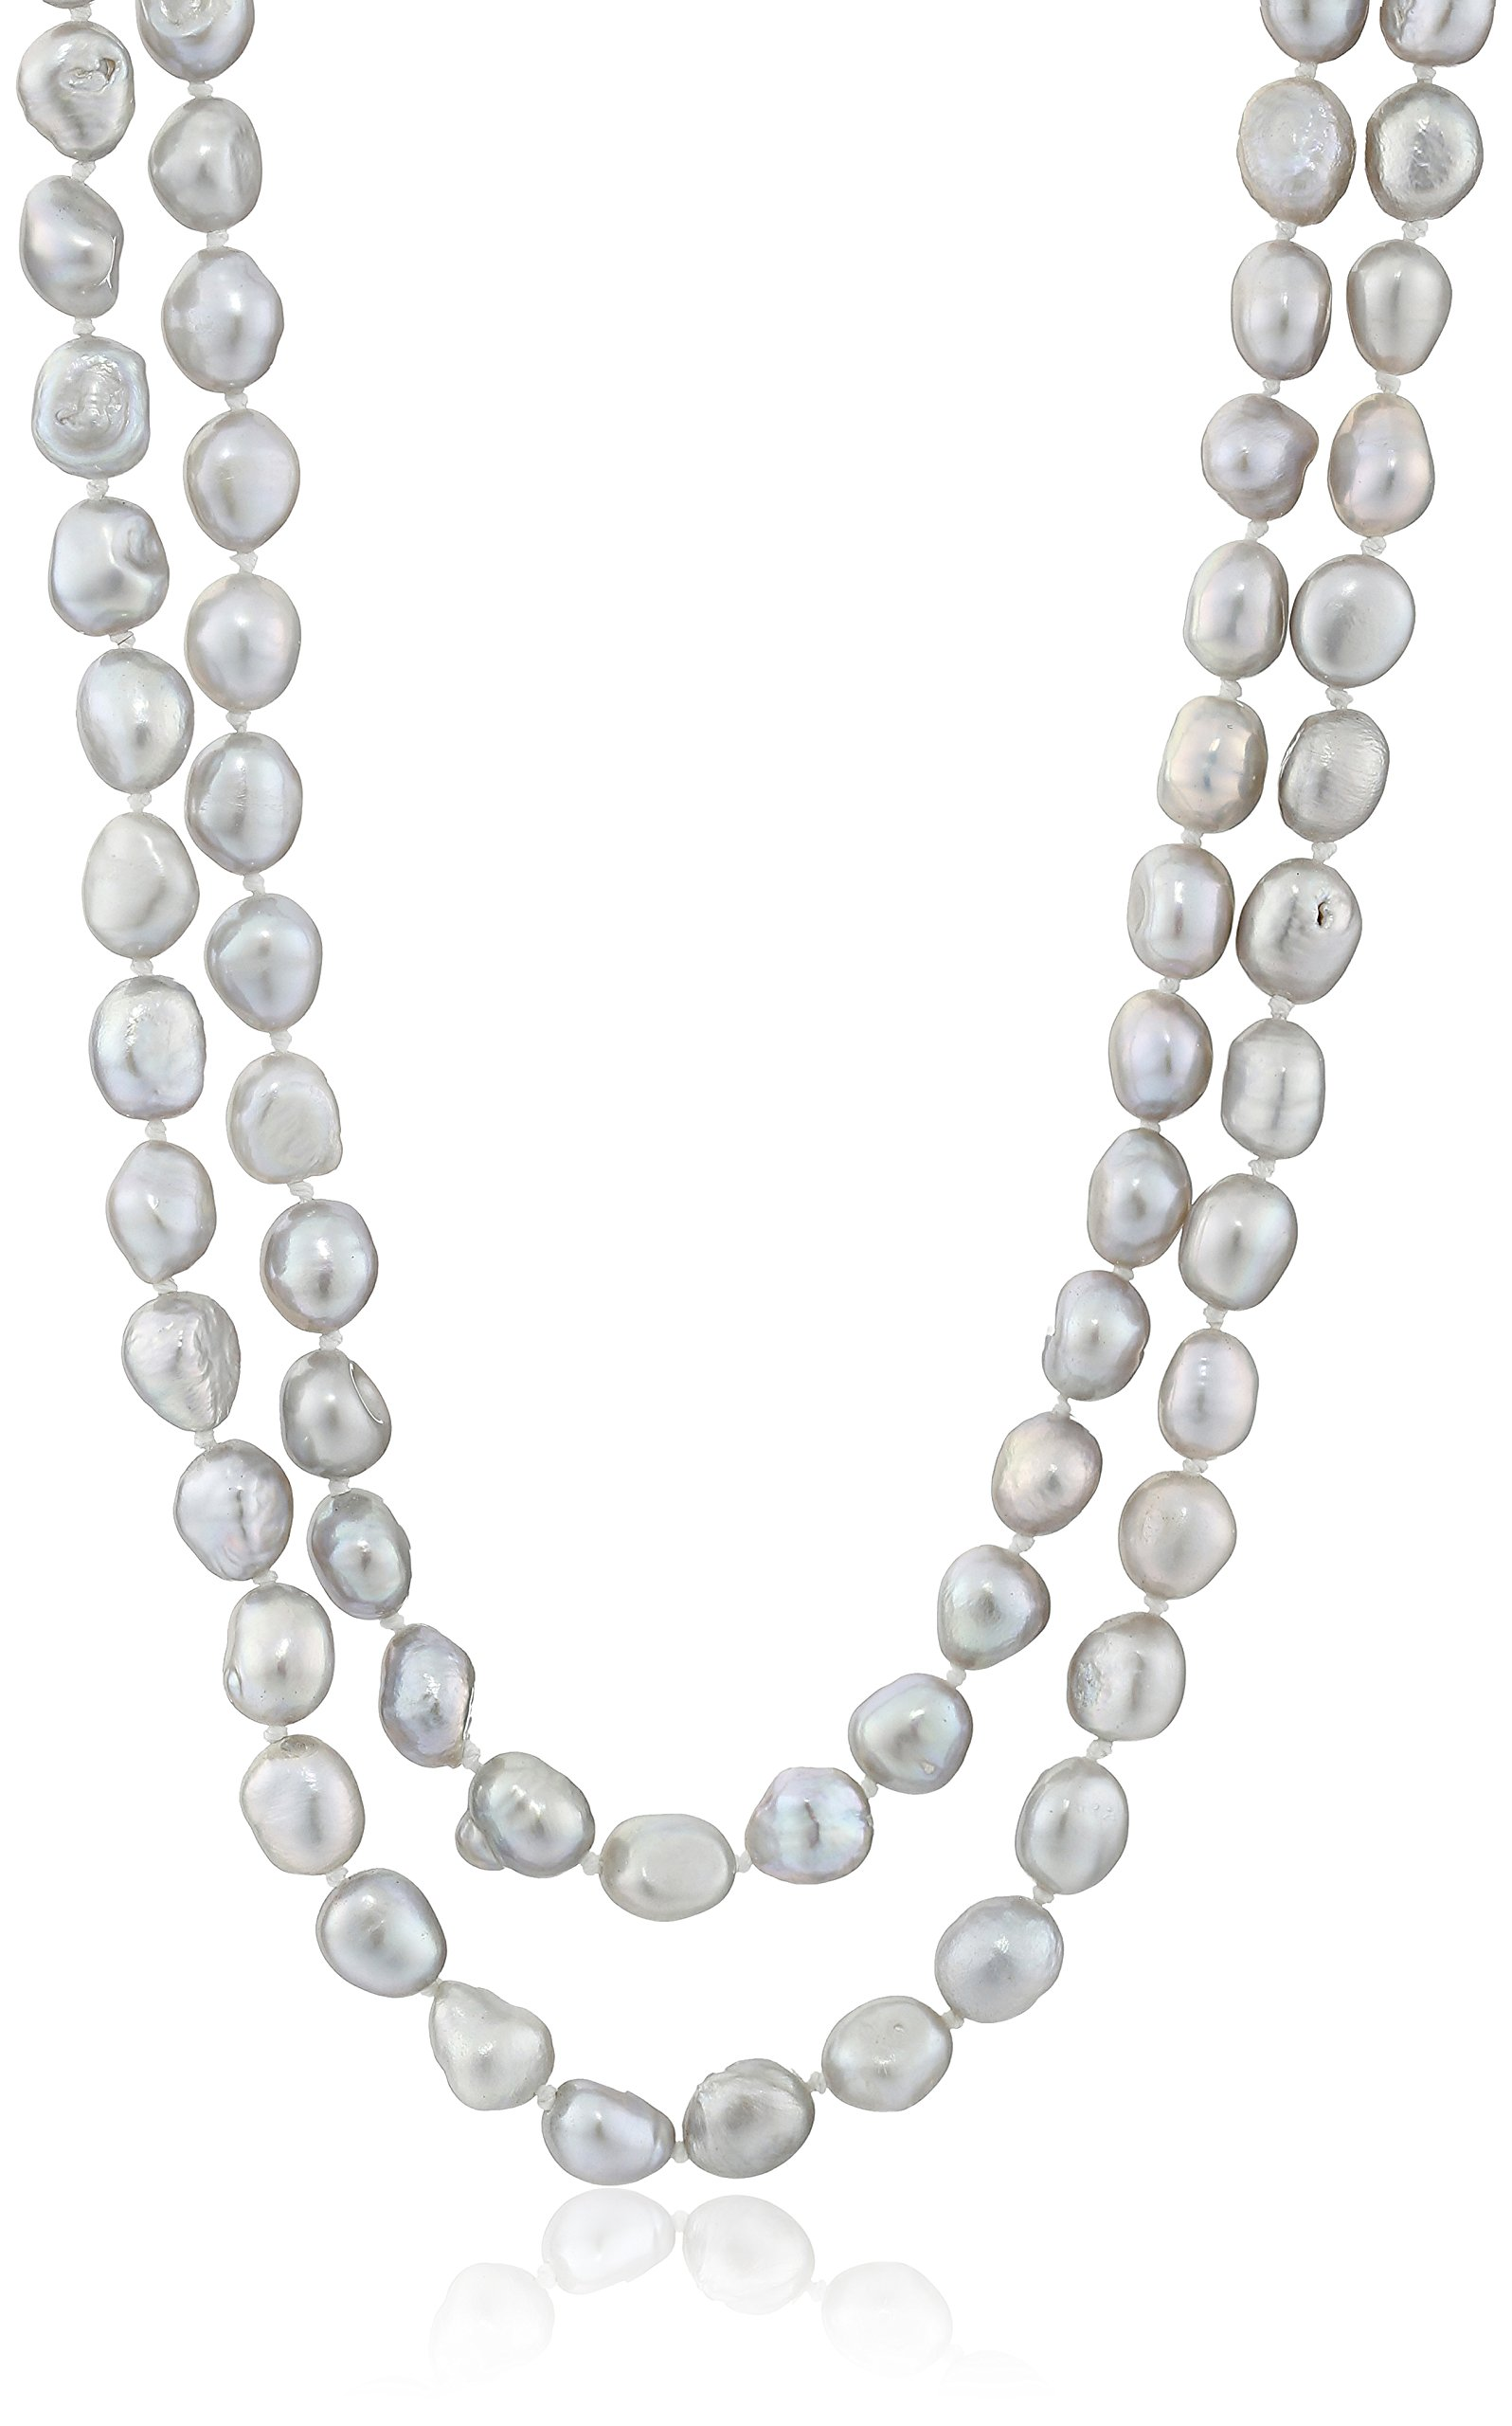 6-7mm Dyed Silver Gray Baroque Freshwater Cultured Pearl Endless Necklace, 50''